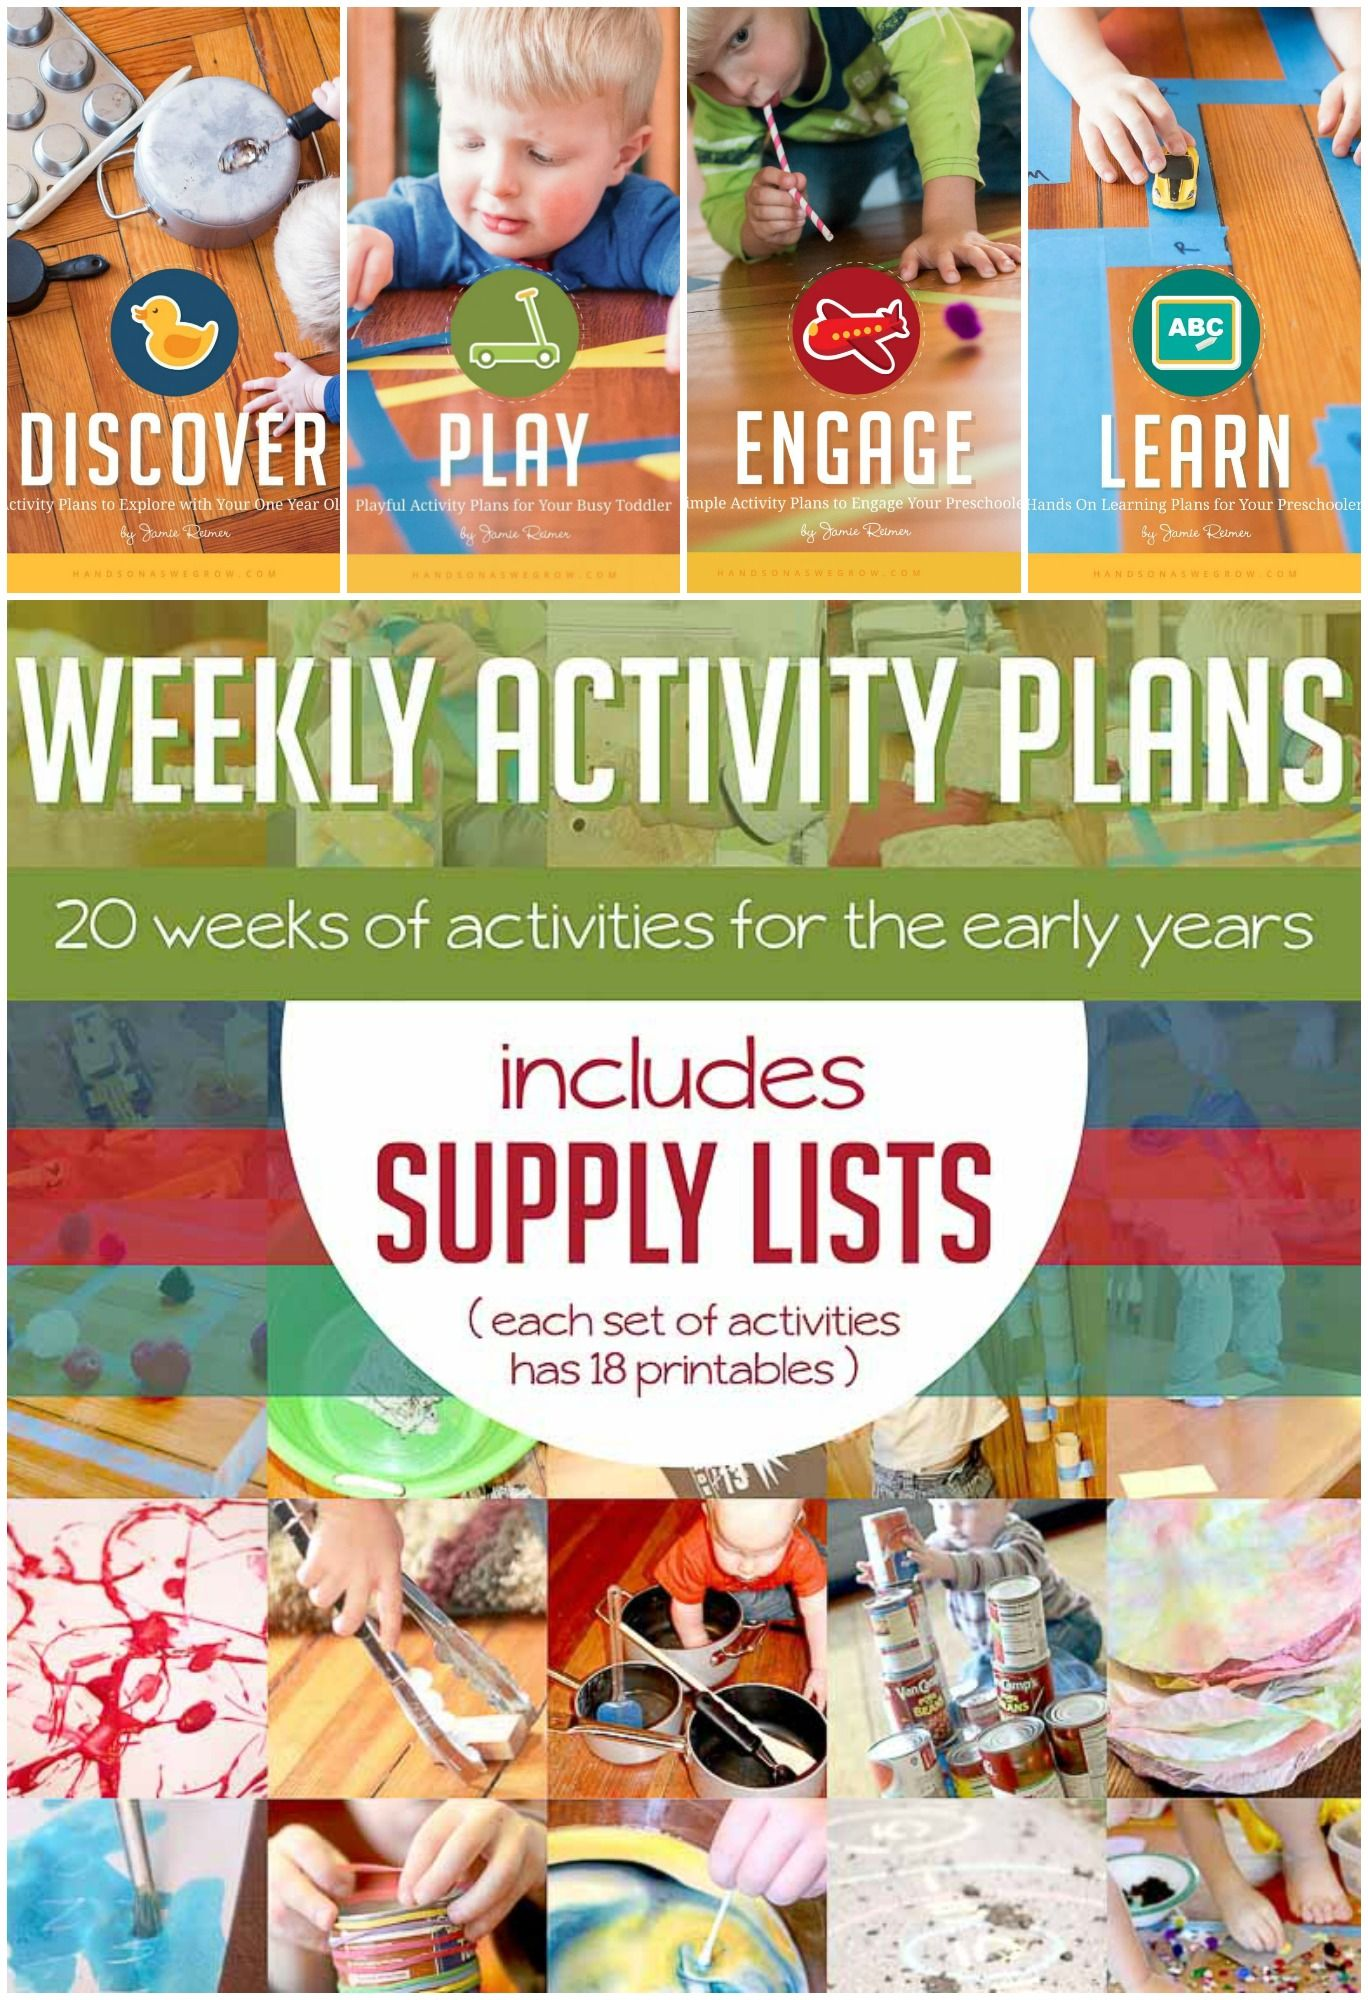 EARLY YEARS BUNDLE OF ACTIVITIES! Get the complete resource of activities. Activity plans that are actually doable and a super quick way to be more present with your kids. Make it super easy to have fun with your kids and be the parent you keep dreaming you will be. (AD)